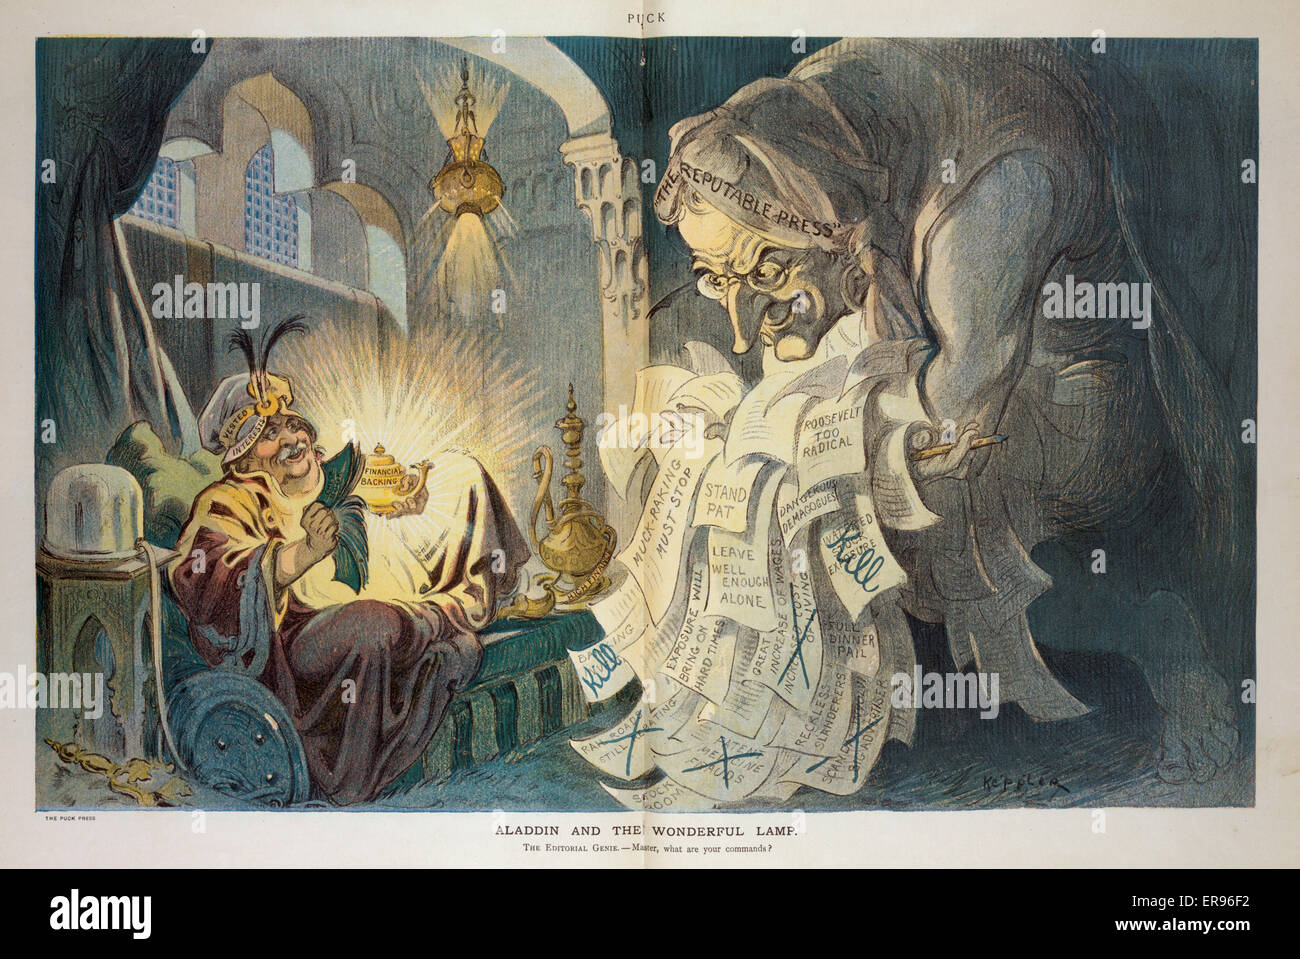 Aladdin and the wonderful lamp. Illustration shows a man seated in an alcove, wearing a hat labeled Vested Interests - Stock Image